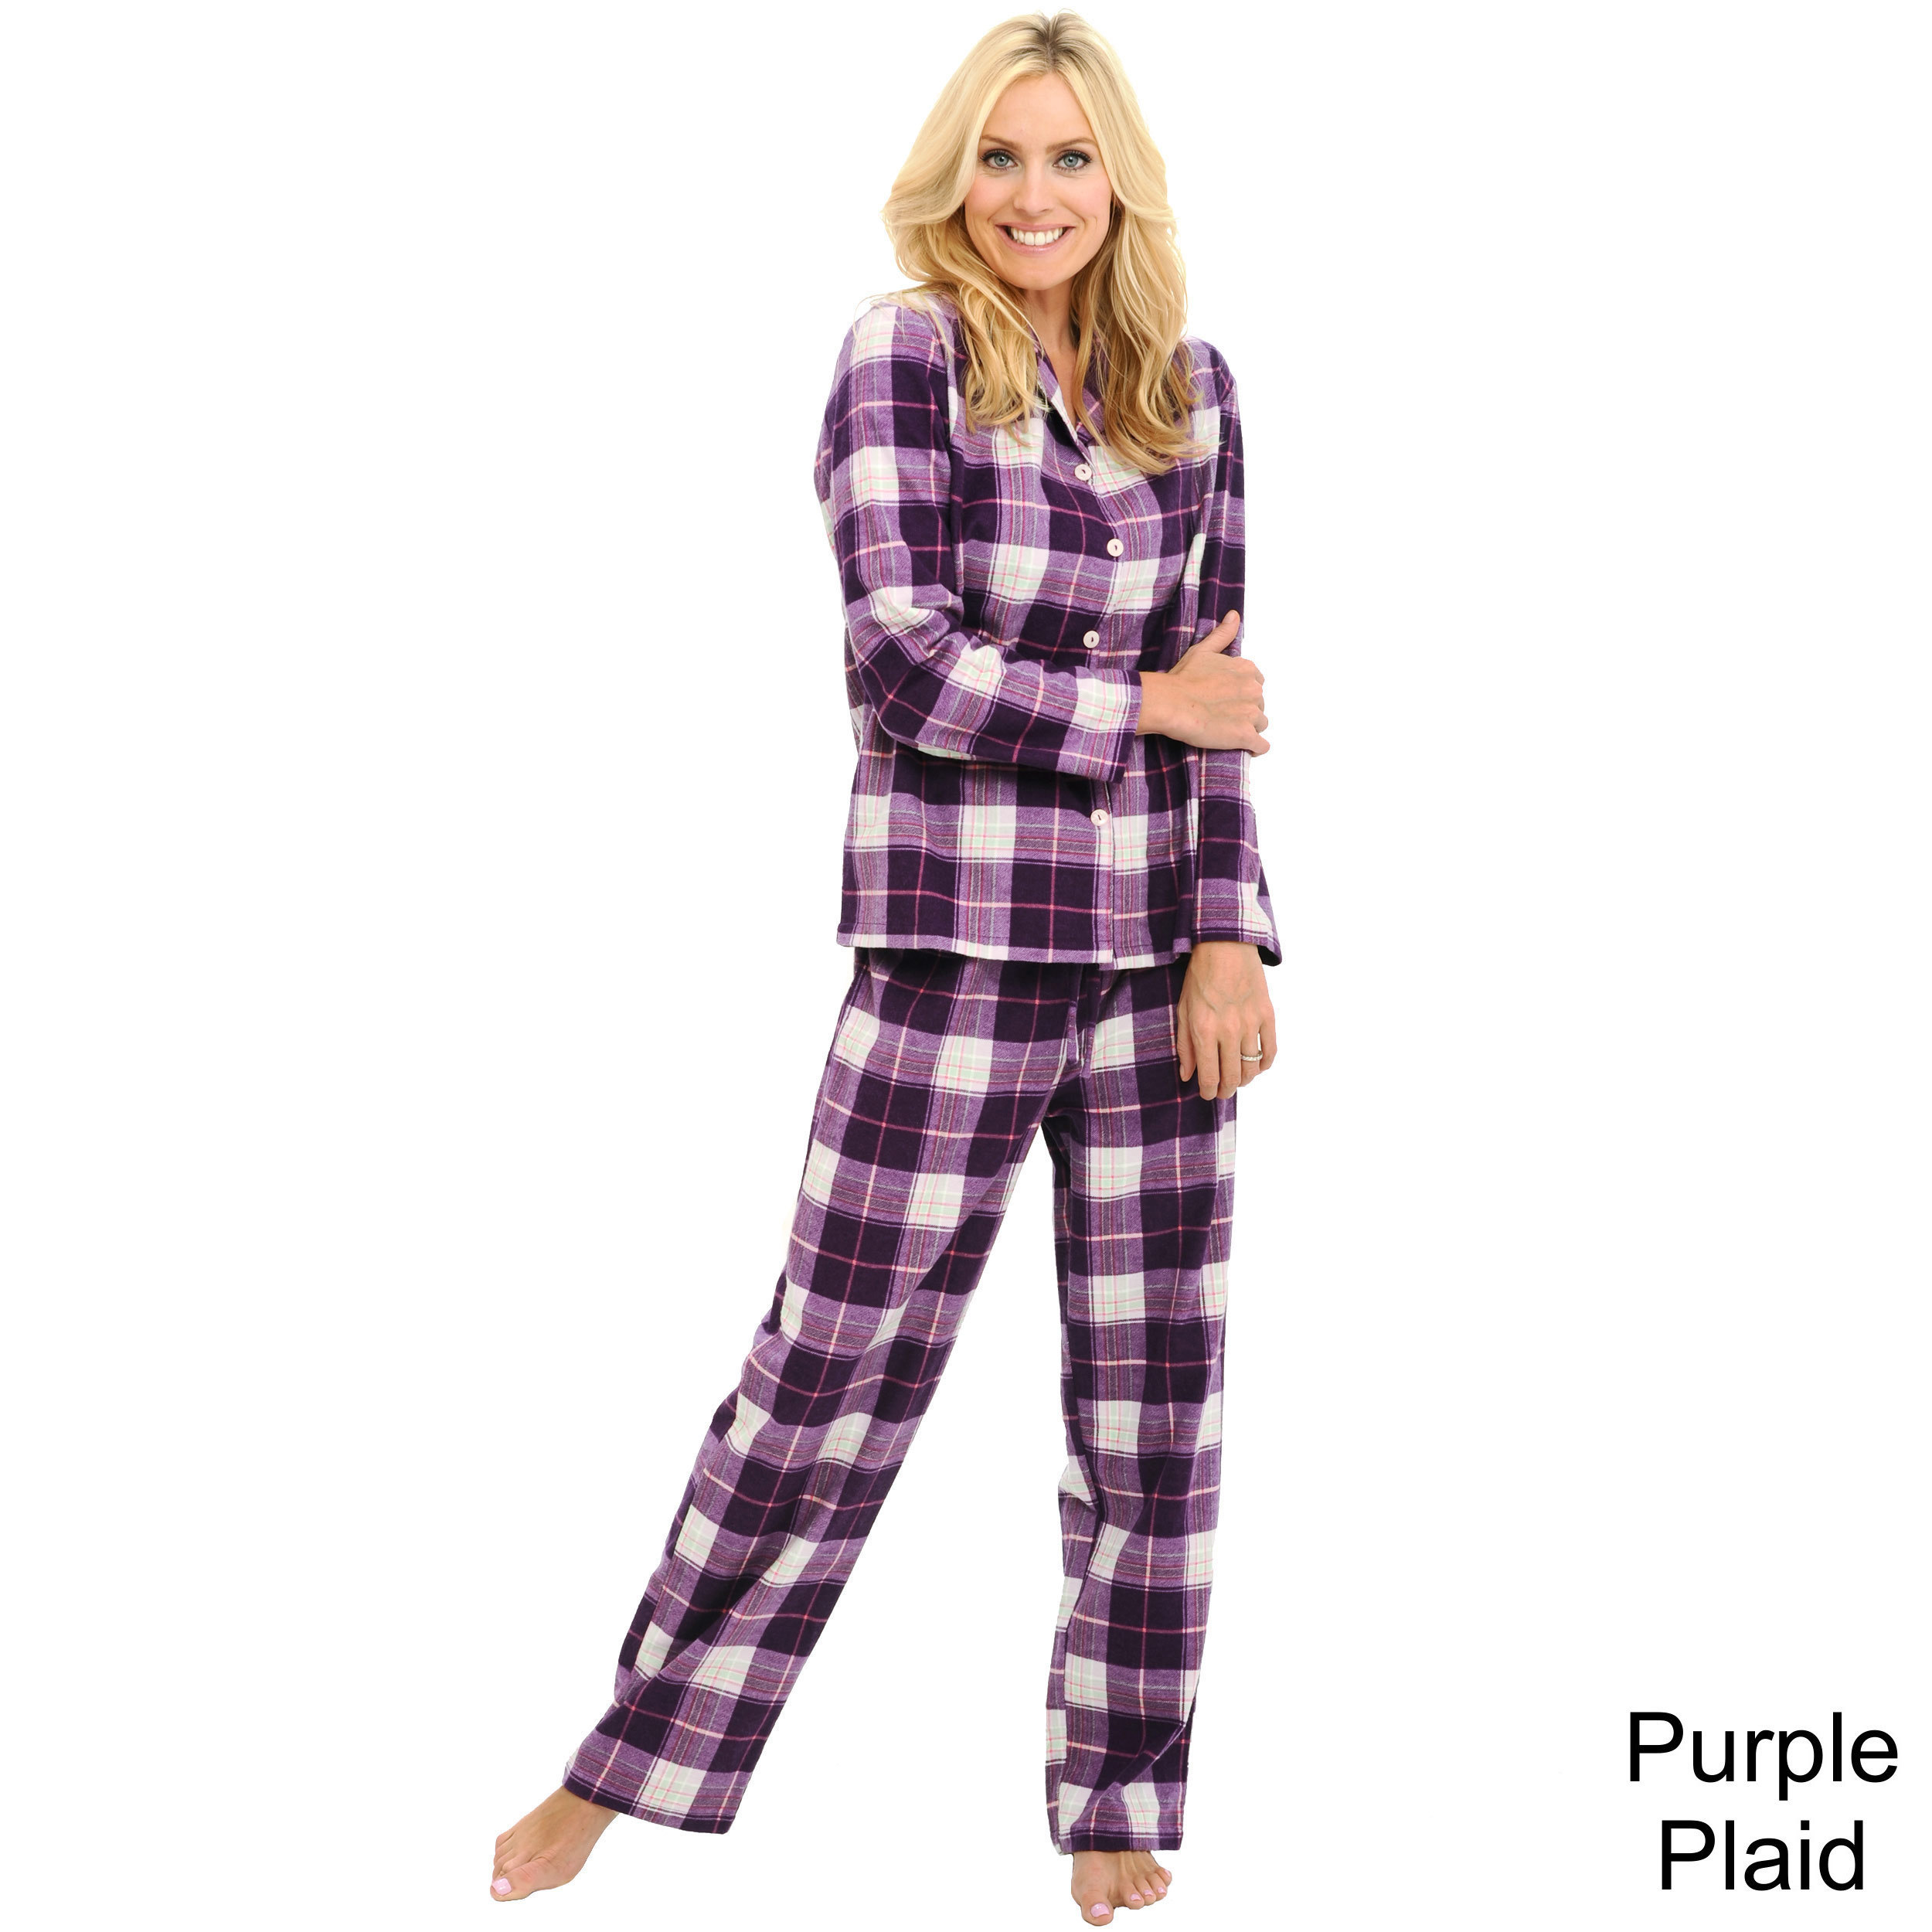 ee2241e2565c Alexander Del Rossa Women s Flannel Pajama Set - Purple Plaid - Sz  Small